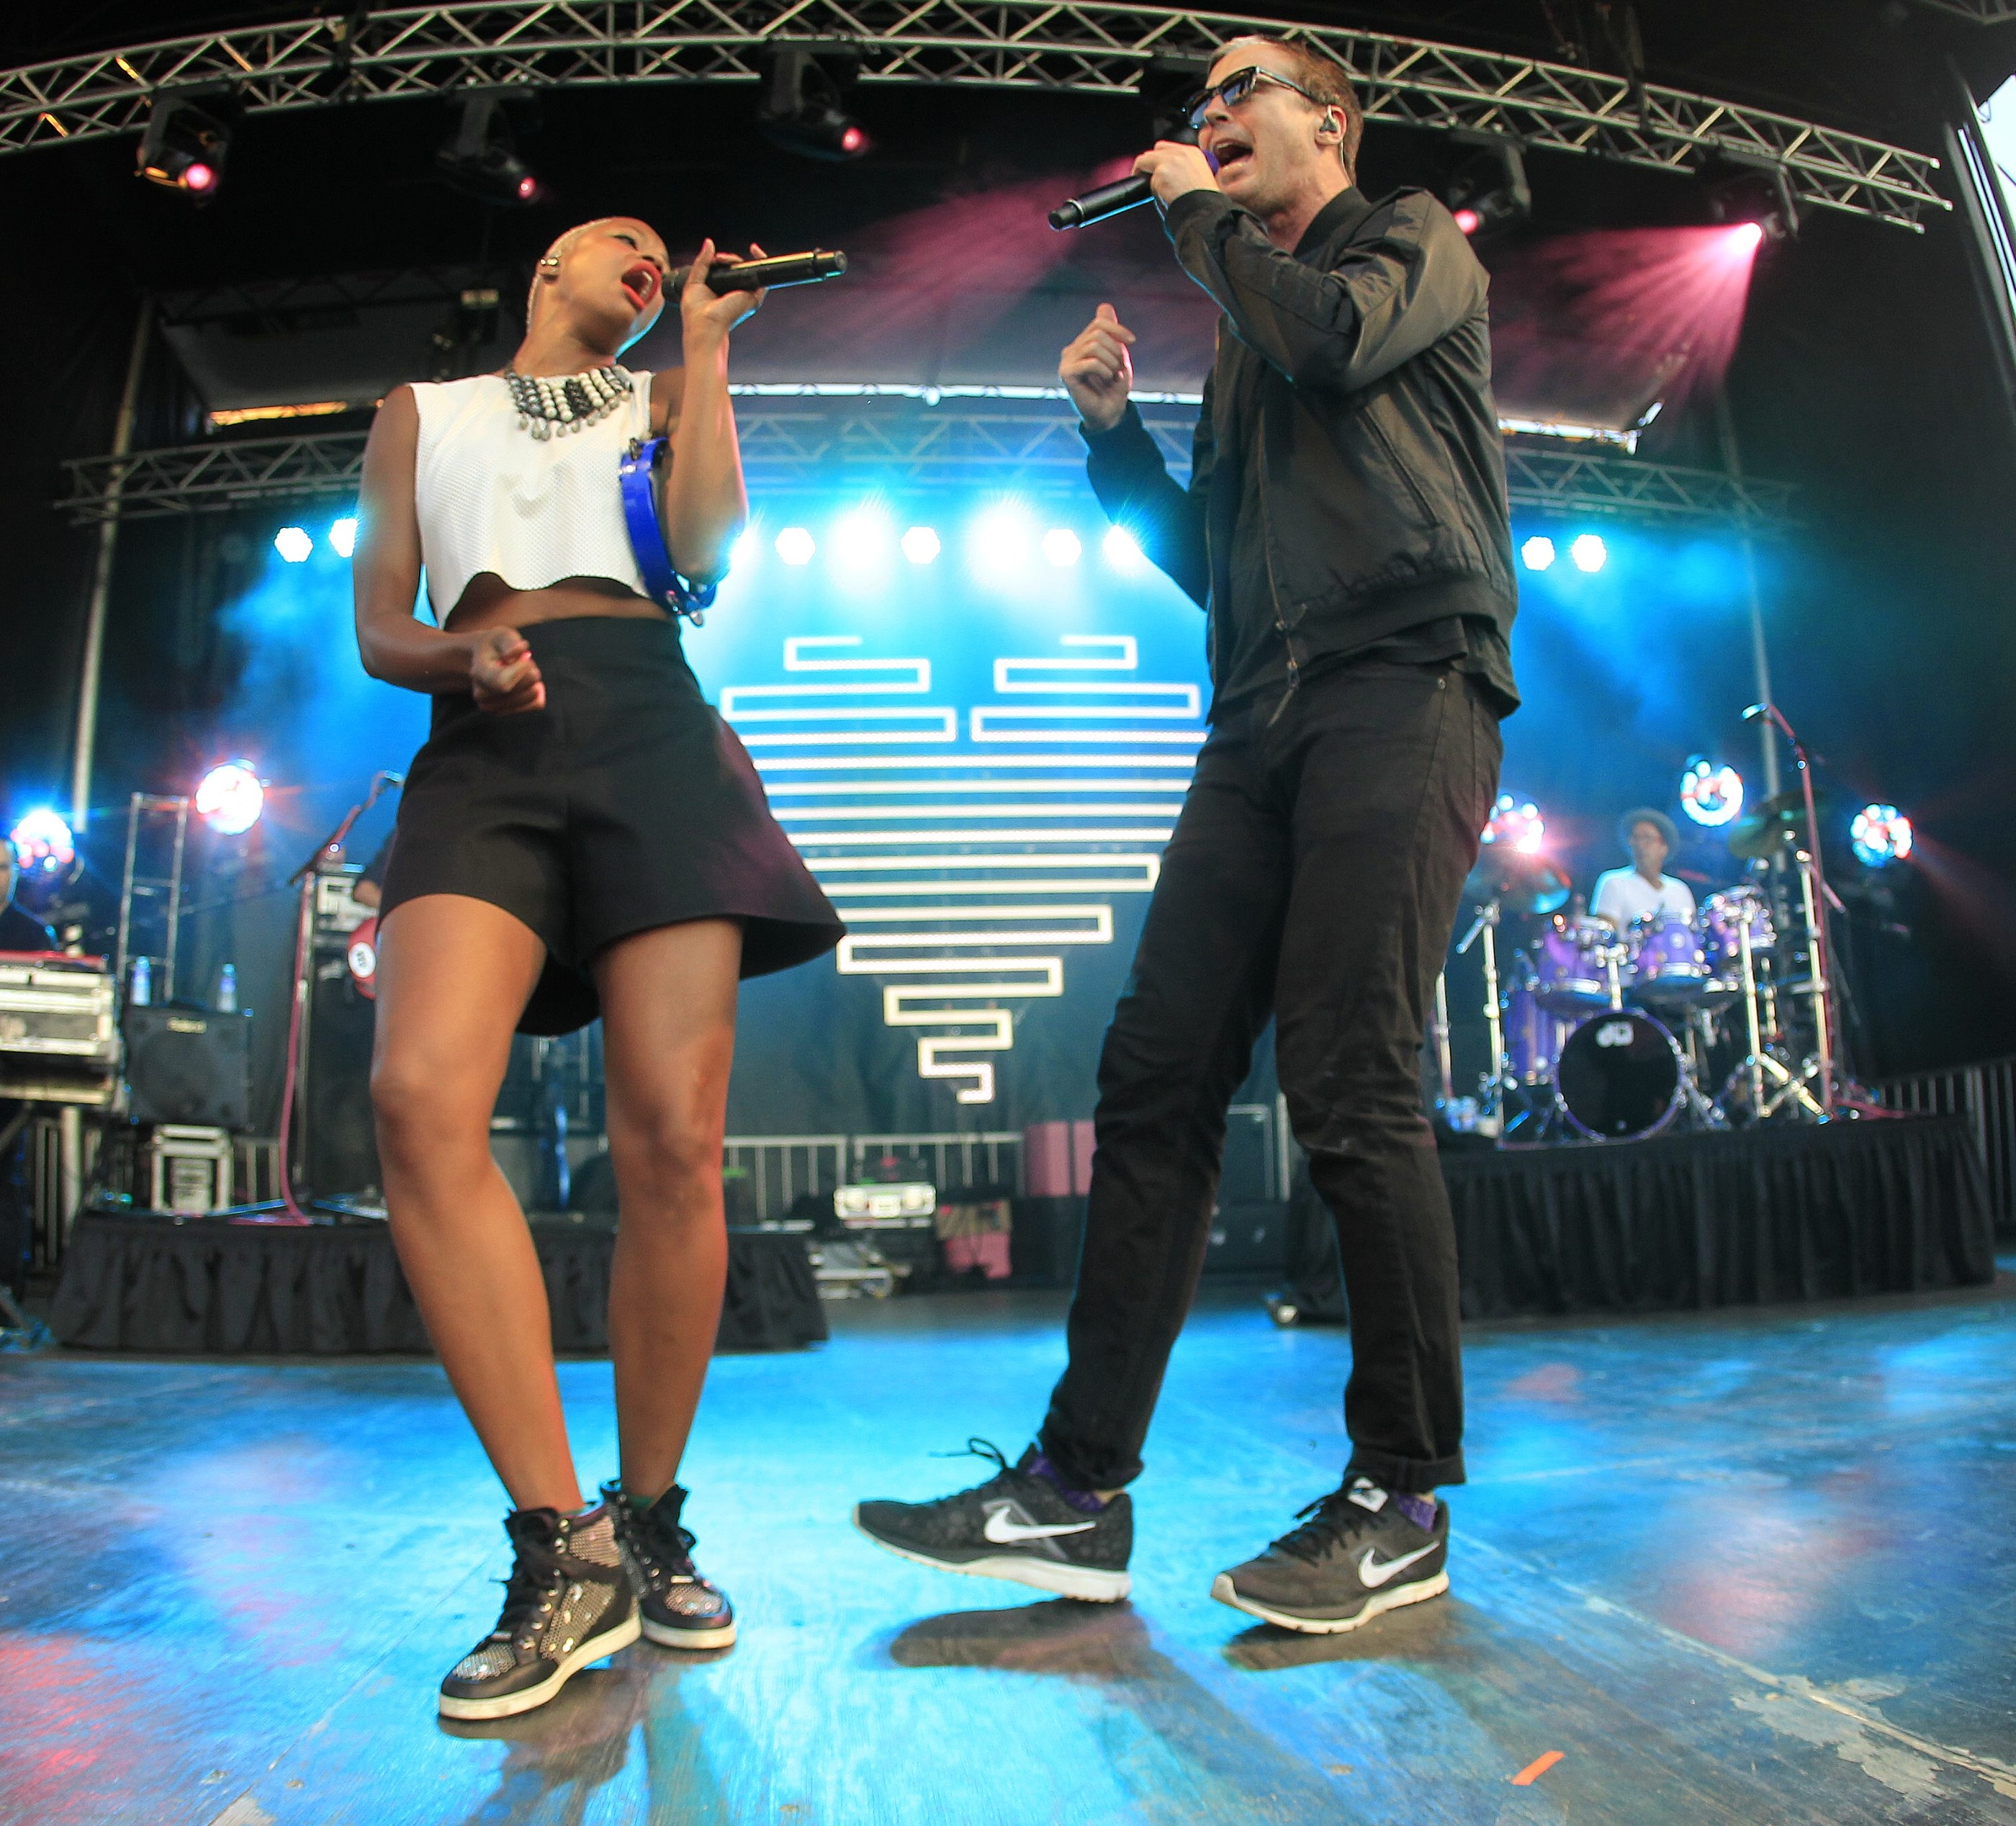 Fitz and the Tantrums had the crowd dancing during their performance Thursday evening at Canalside.